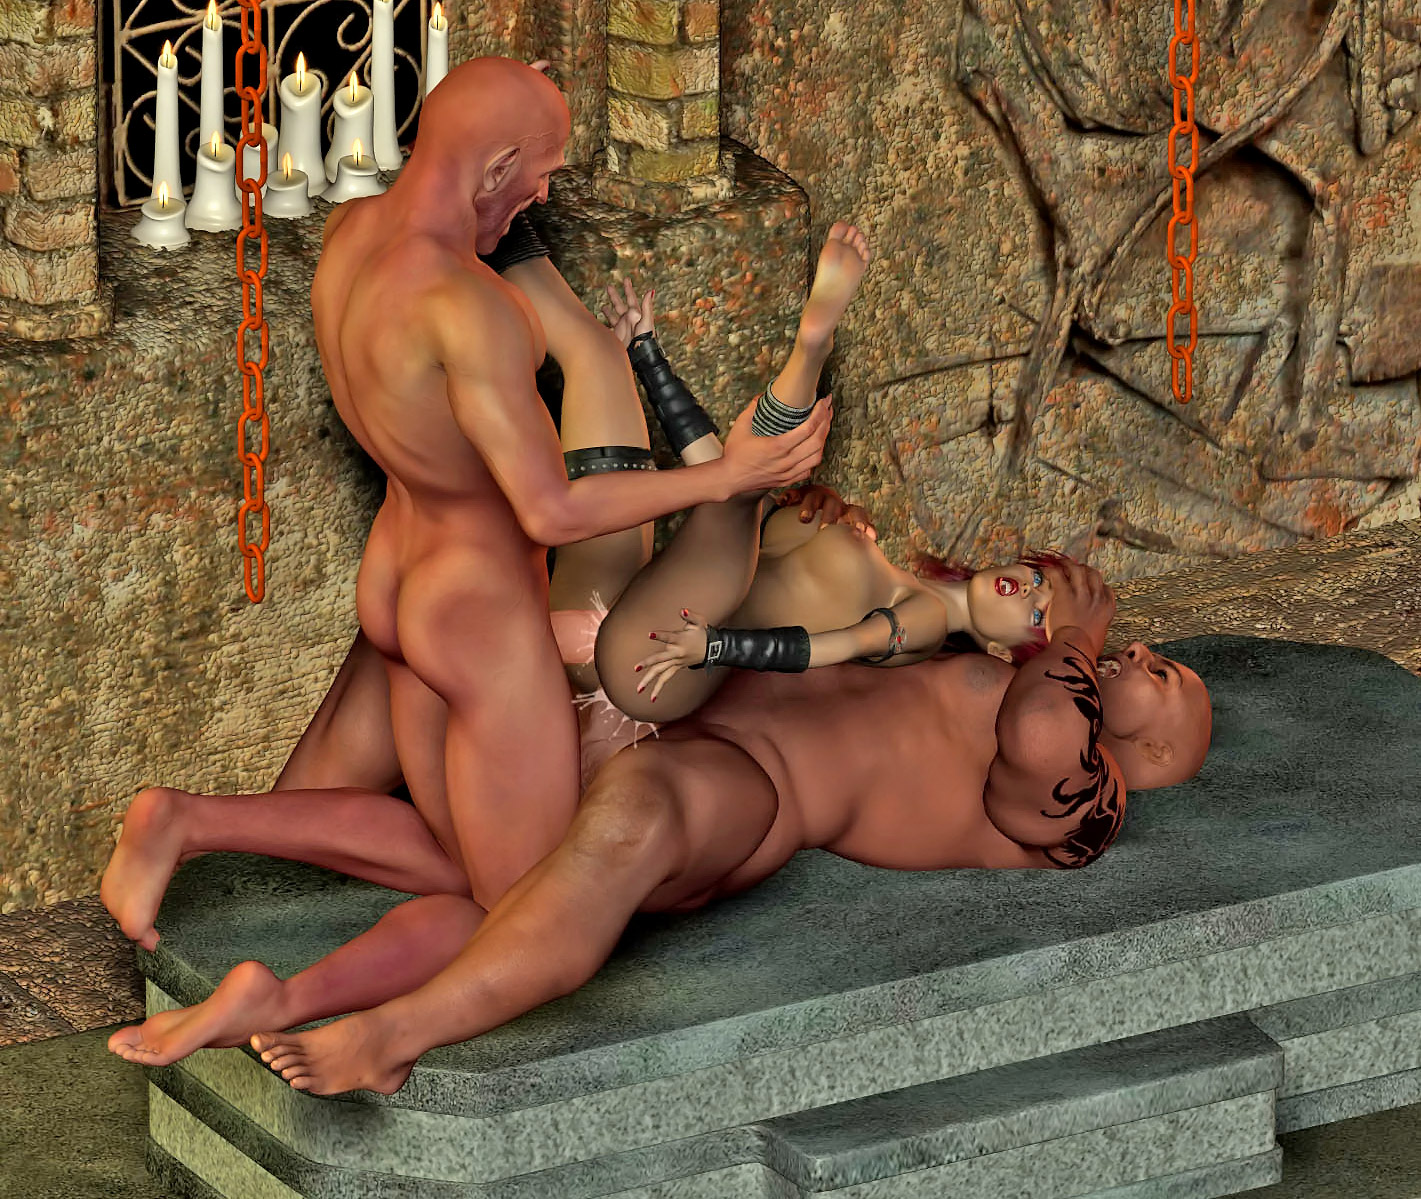 3d bdsm cartoon sex photos